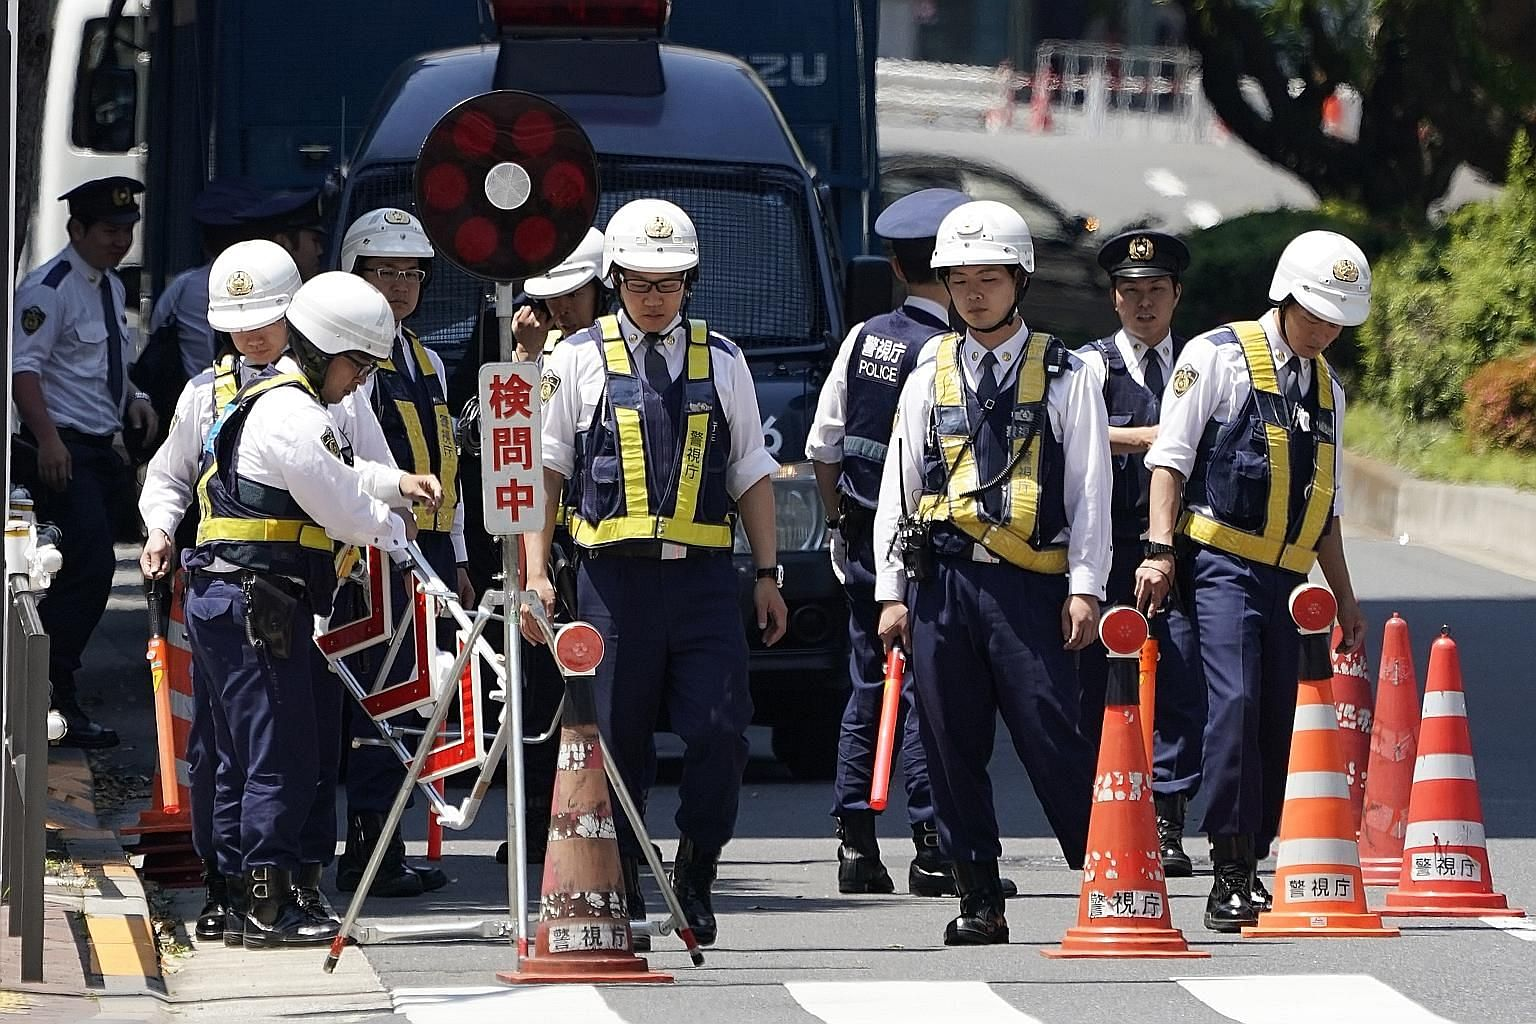 Police officers setting up barricades in front of the American embassy in Tokyo yesterday, ahead of US President Donald Trump's state visit to Japan today.